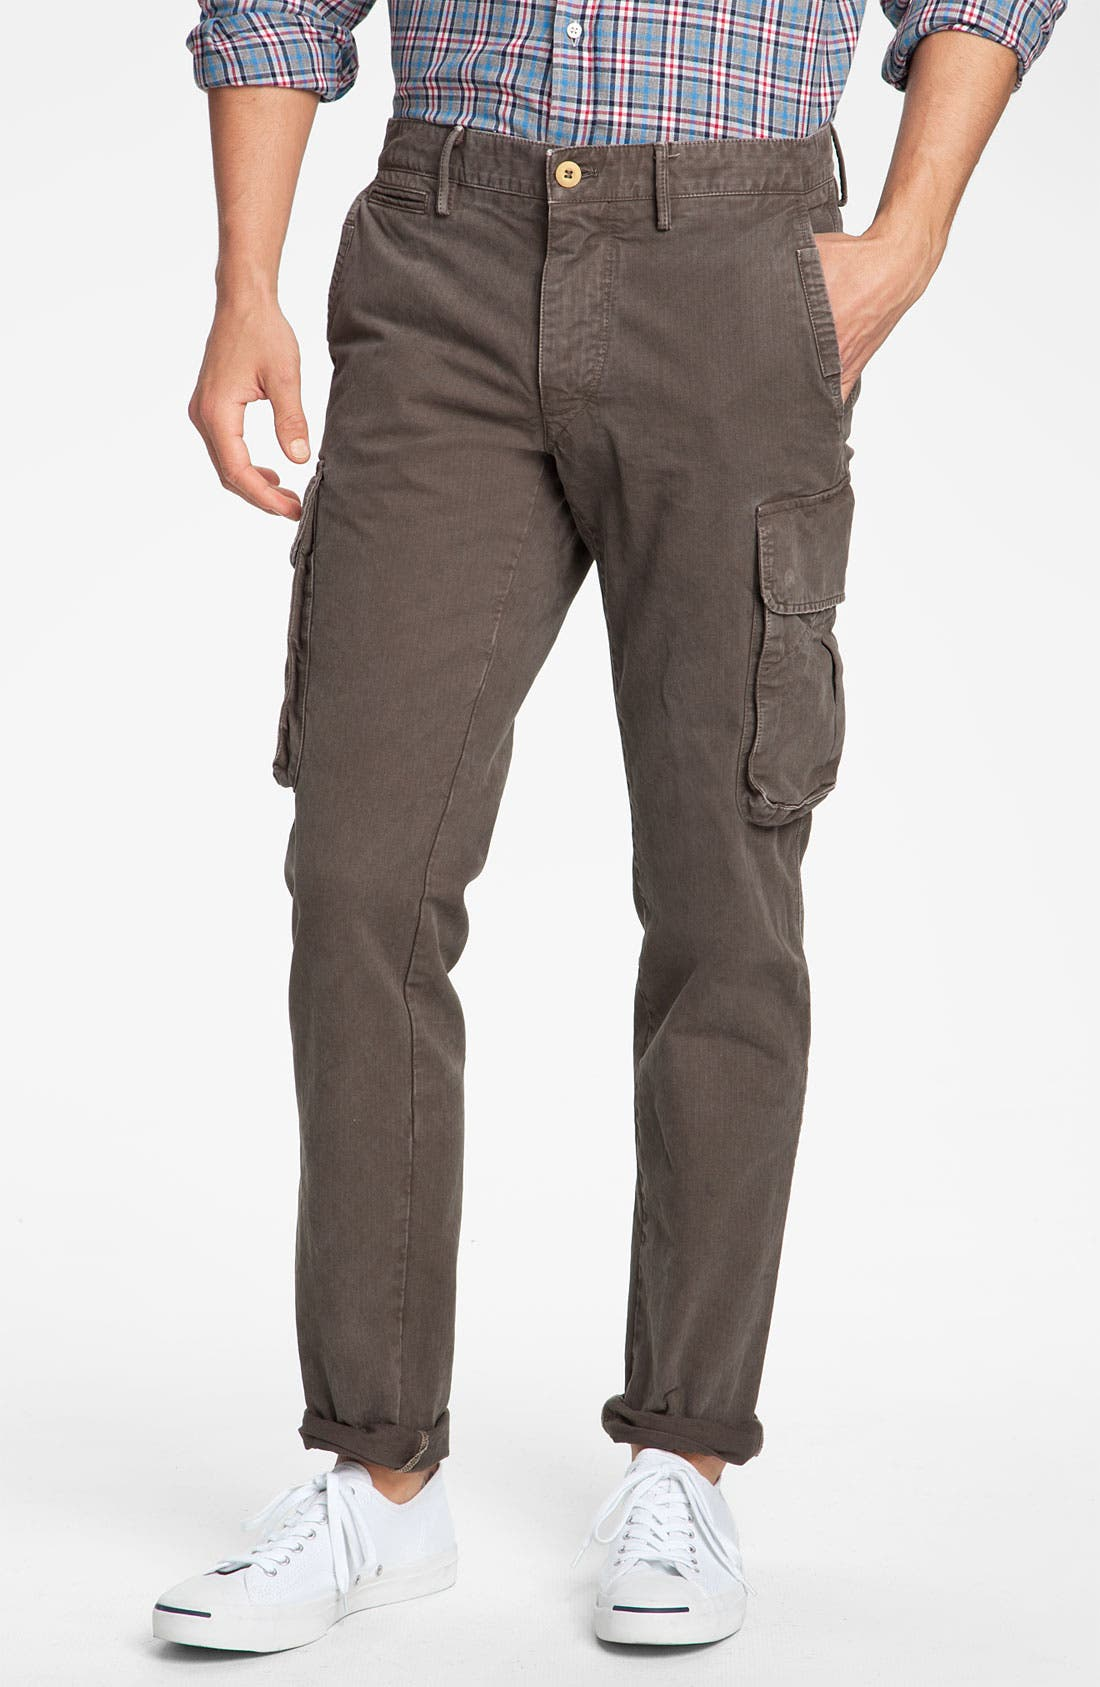 Alternate Image 1 Selected - Mason's Slim Fit Cargo Pants